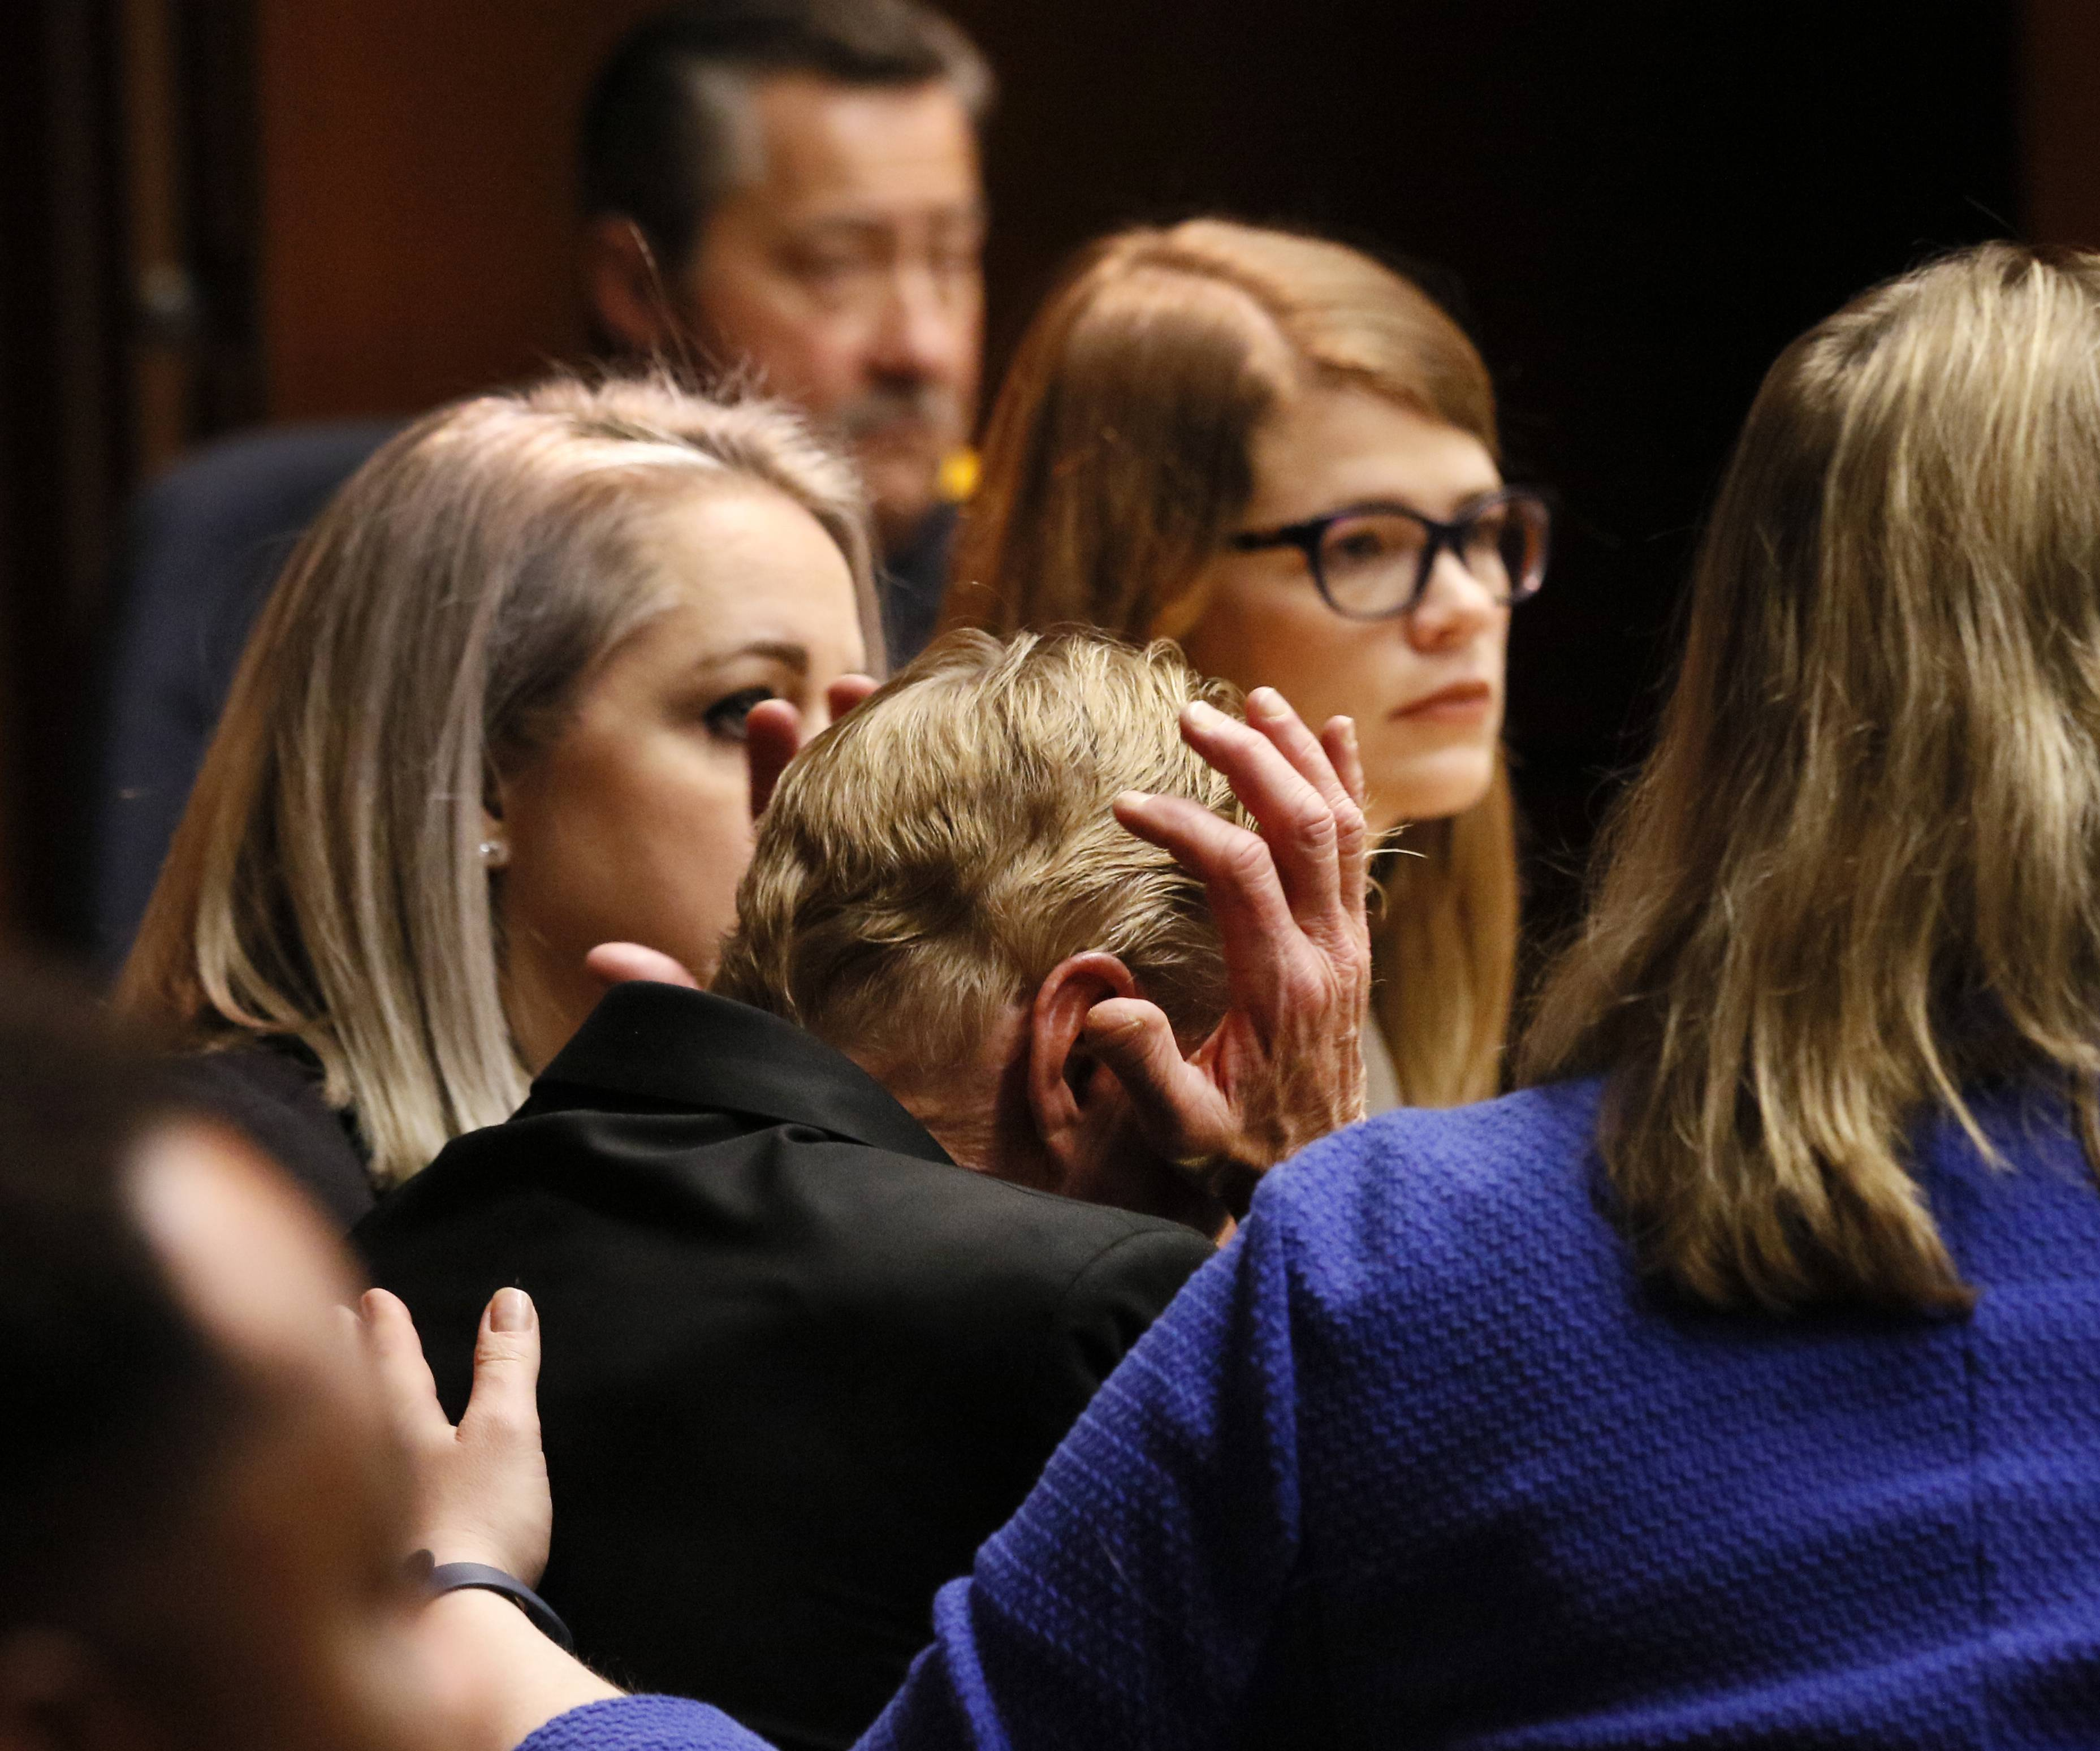 William Amor reacts to DuPage County Judge Liam Brennan's not-guilty verdict Wednesday at the DuPage County Courthouse. Amor was on trial for charges of first-degree murder and arson in the 1995 death of his mother-in-law in Naperville.